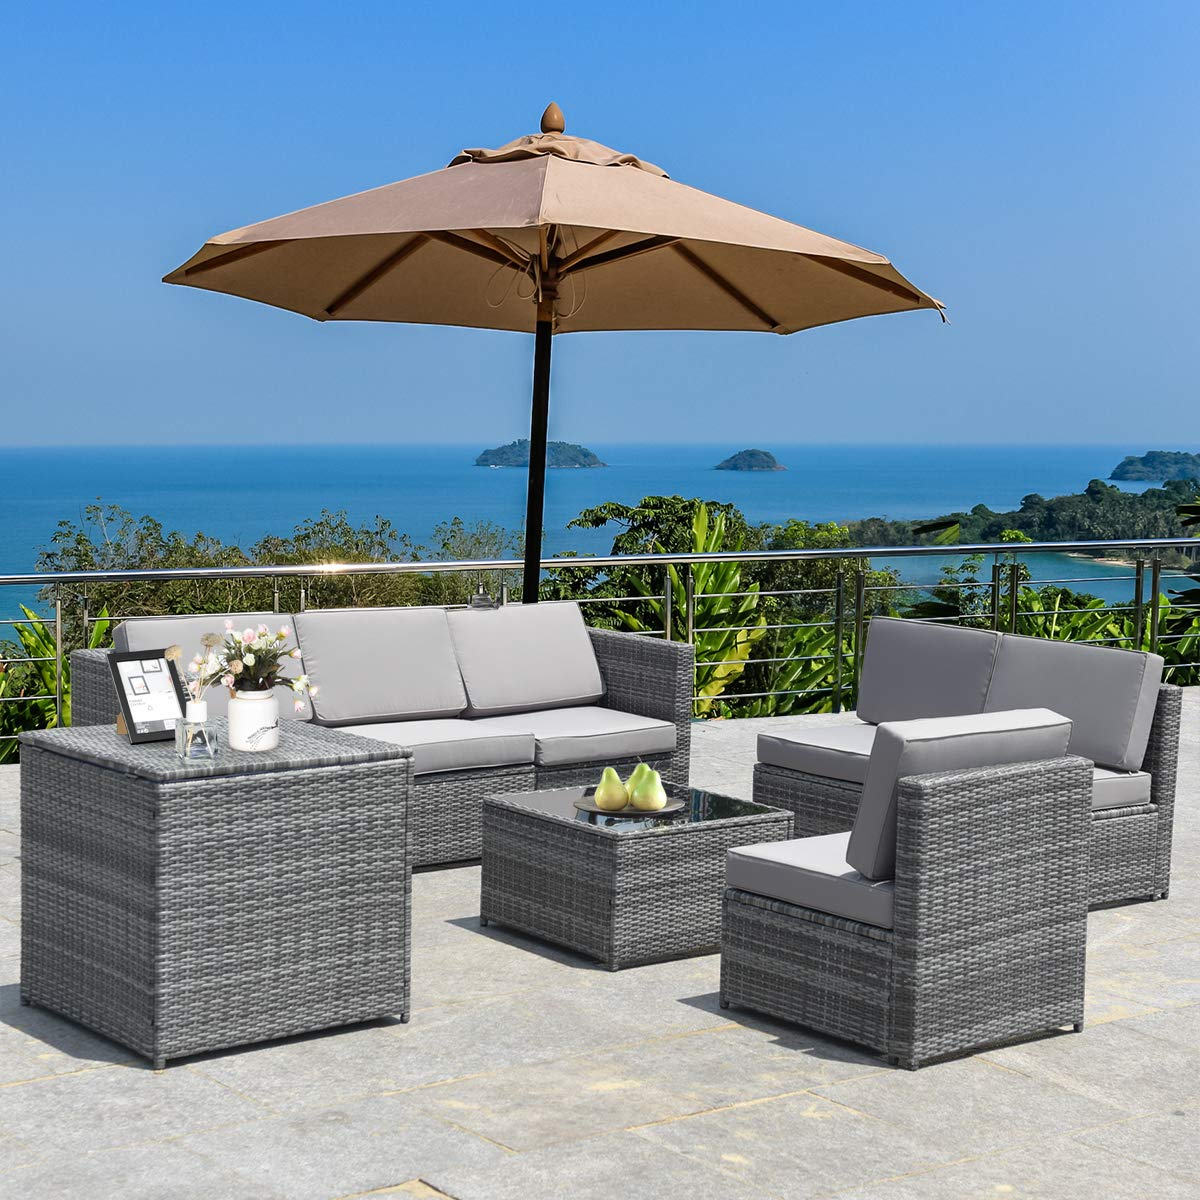 Tangkula 8 PCS Outdoor Patio Furniture Set, Rattan Wicker Sofa Set, Sectional Sofa Couch Conversation Set w/Storage Table and 12 Zippered Cushions for Garden Backyard Poolside (Grey)